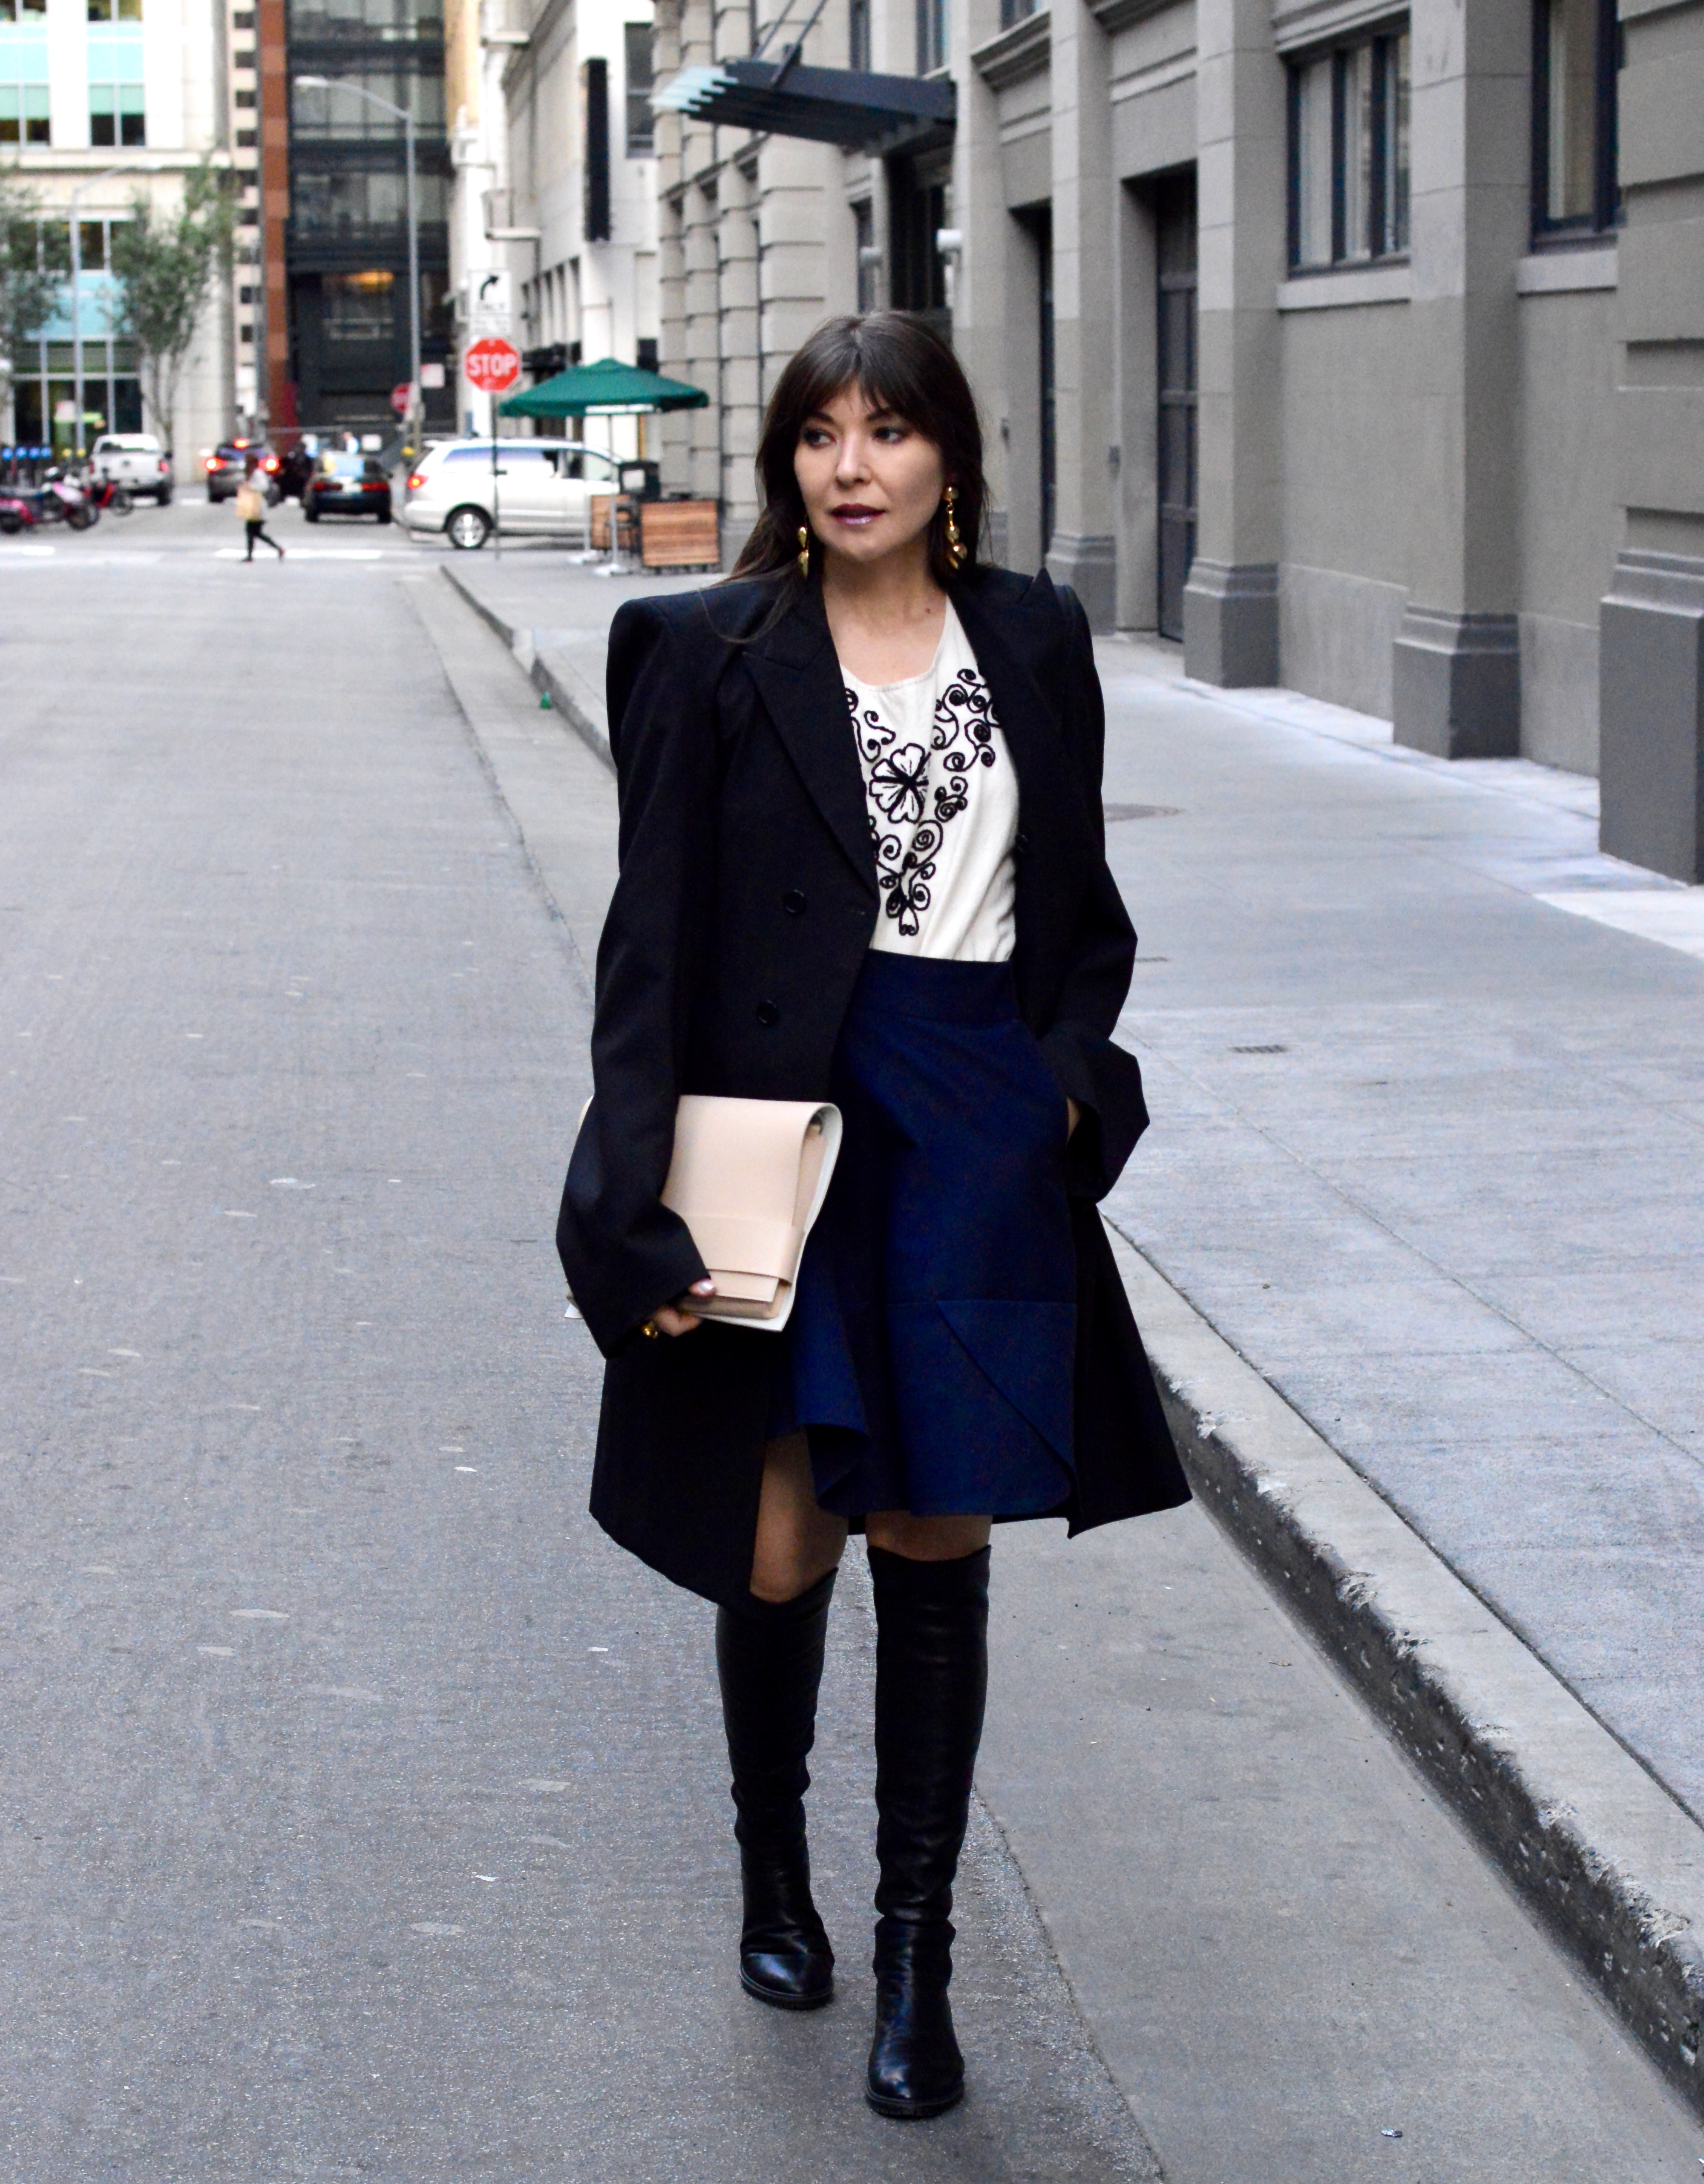 Oversized coat and peasant blouse.